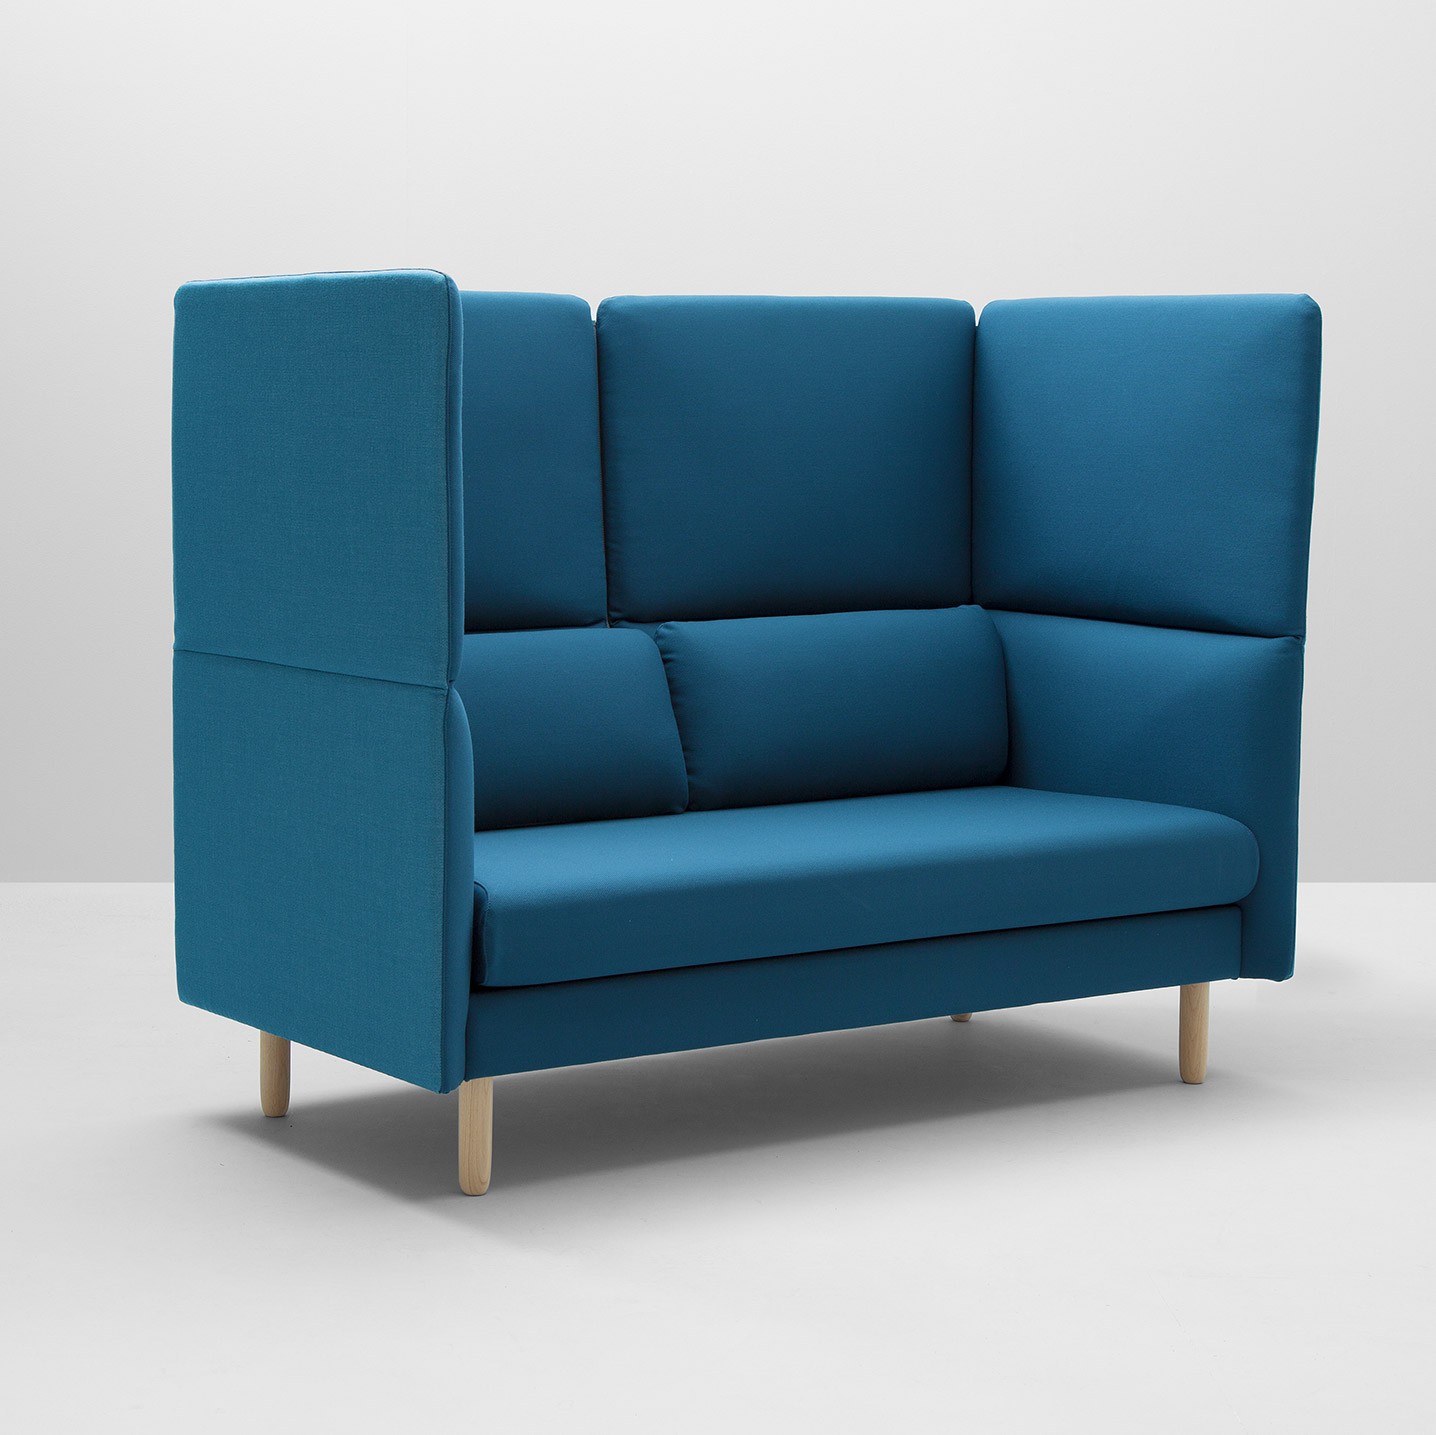 Schlafsofa grn seater sofas with schlafsofa grn z for Kleines rundes sofa